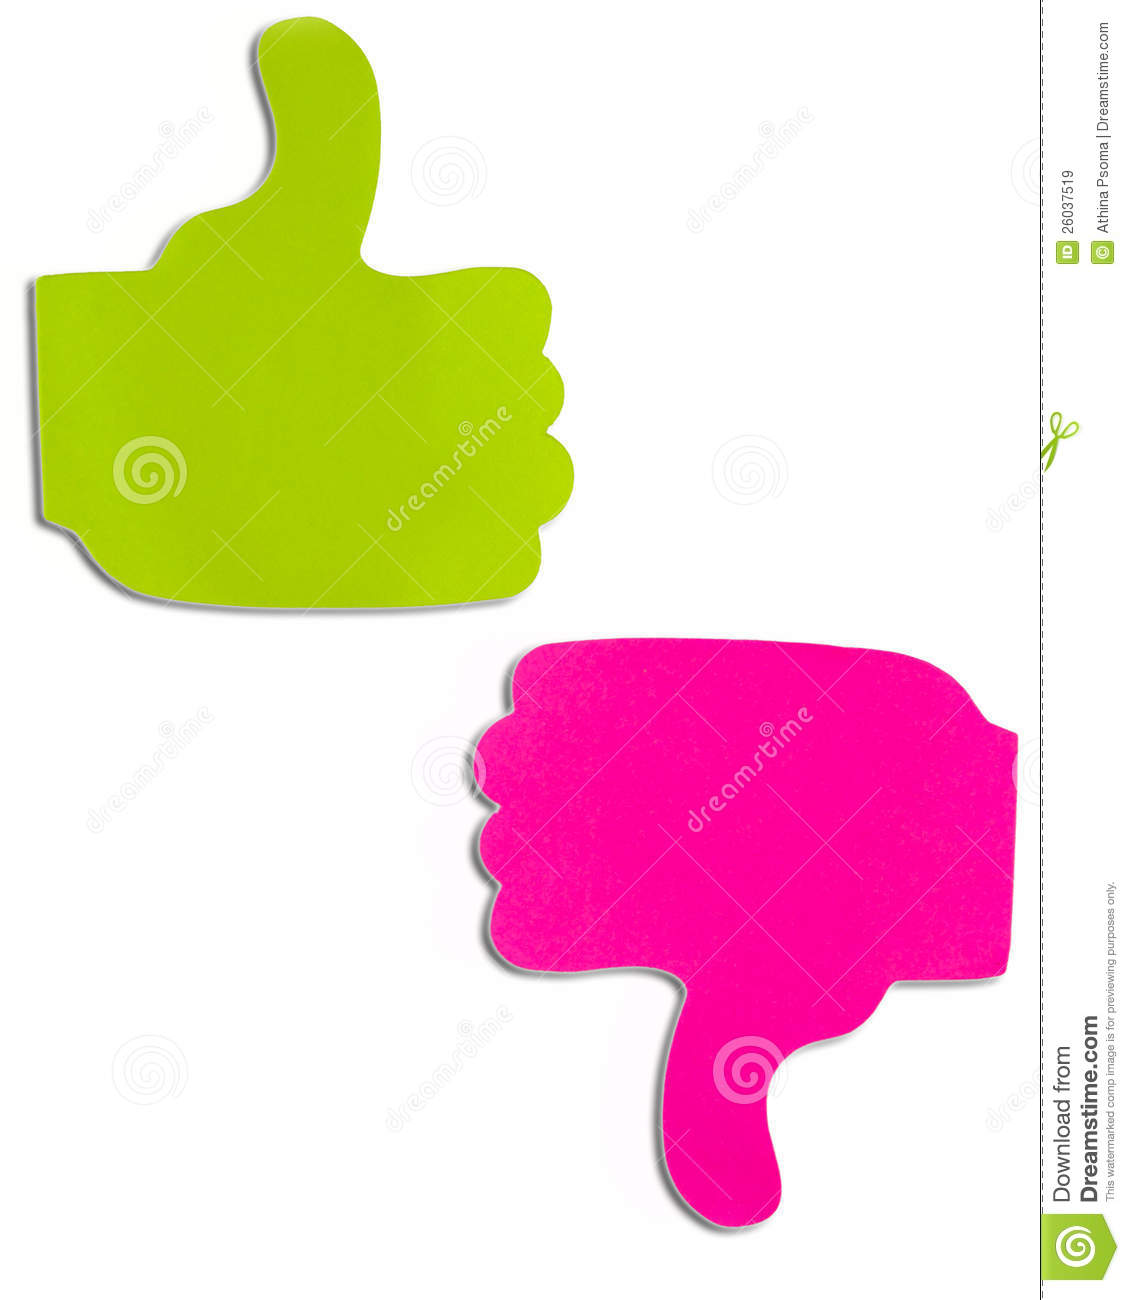 Green and purple sticky notes in shape thumb up and thumb down.